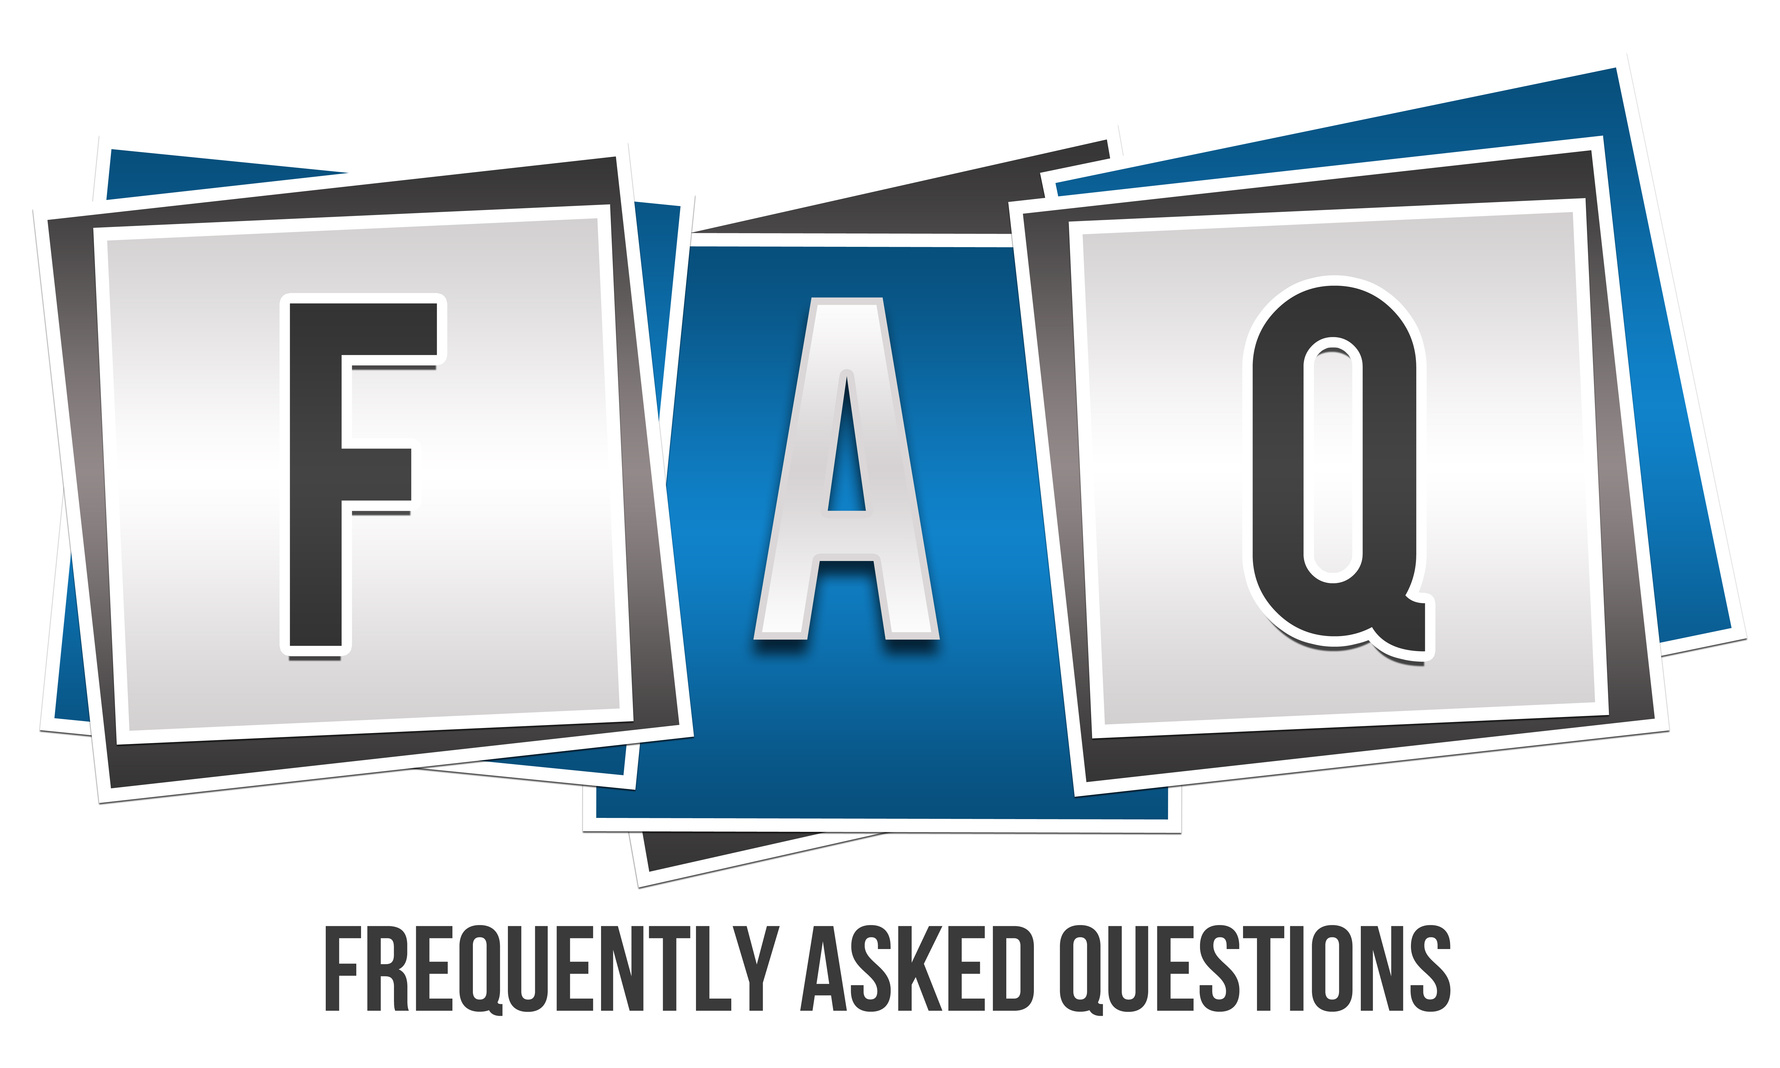 faq frequently asked questions based on internet content marketing to digital marketing expert in sonipat, haryana, delhi, noida, india